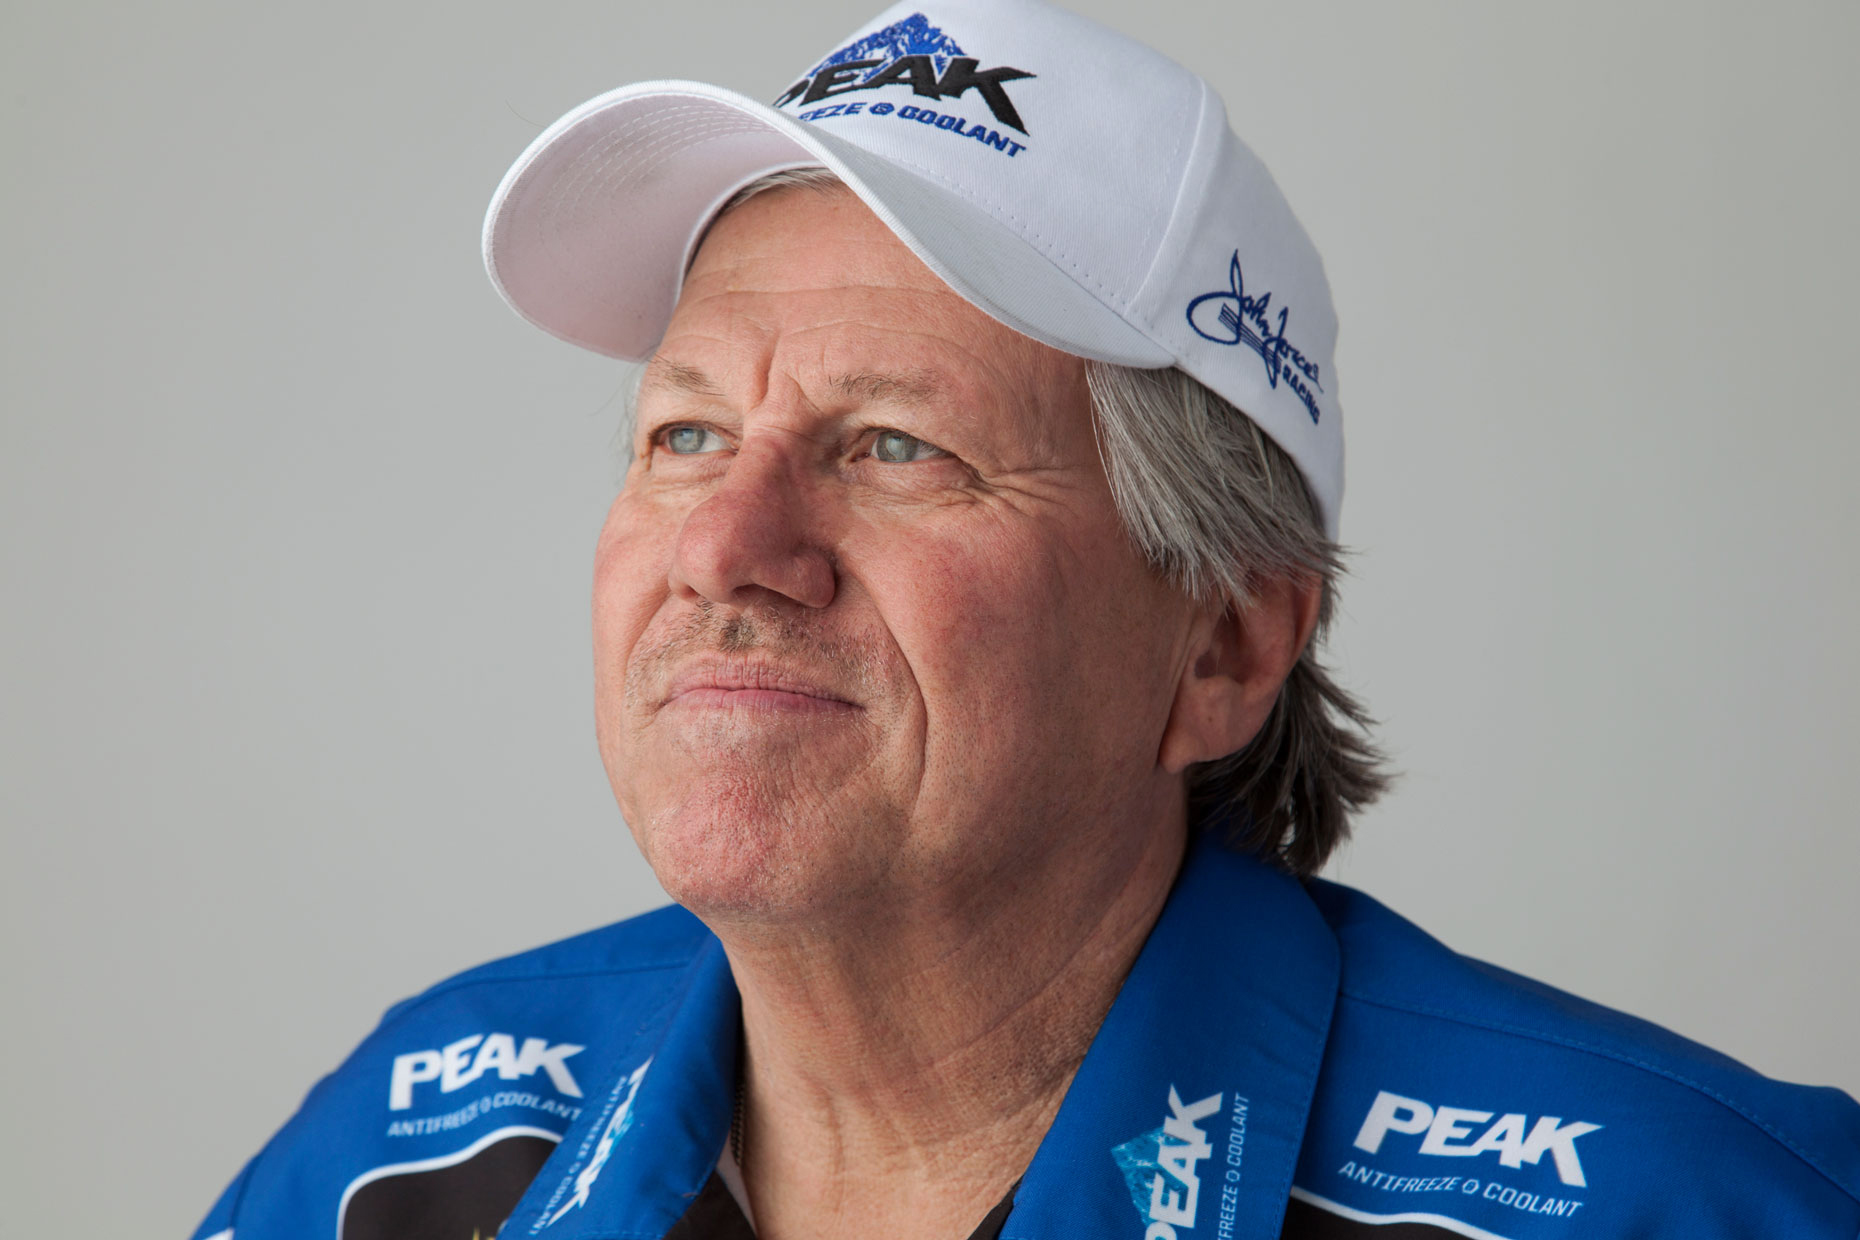 JohnForce1